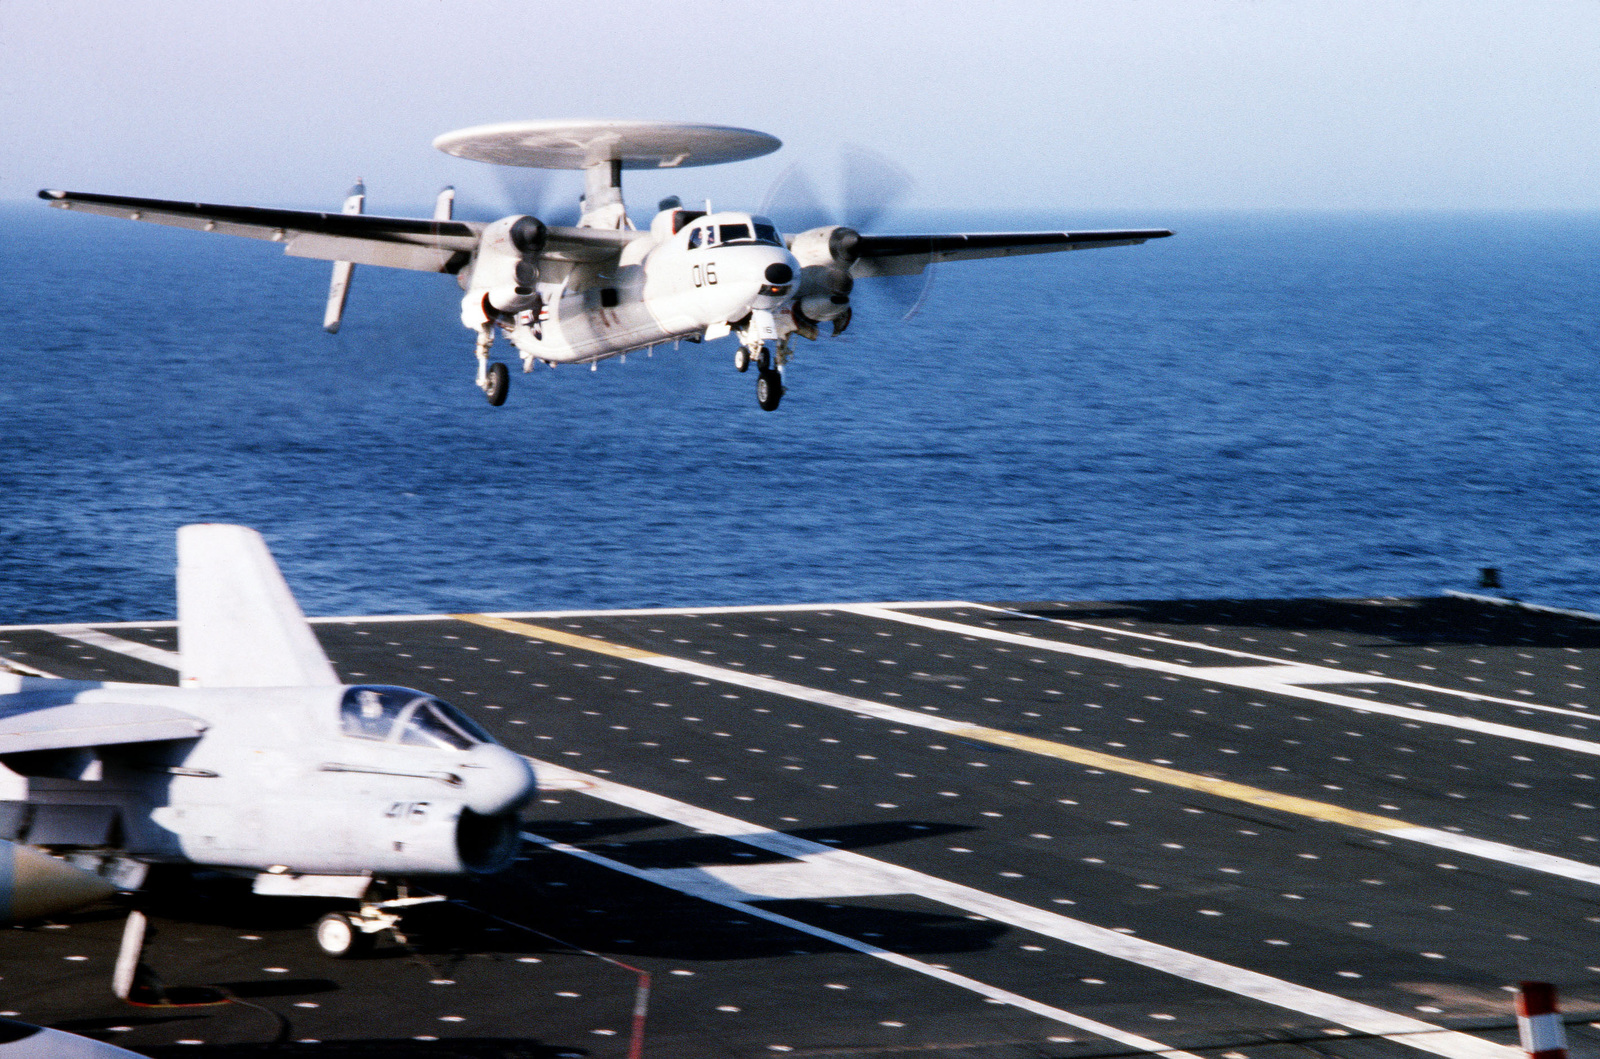 An E-2C Hawkeye airborne early warning aircraft comes in for a landing aboard the aircraft carrier USS JOHN F. KENNEDY (CV 67). An A-7 Corsair II aircraft are parked to the left